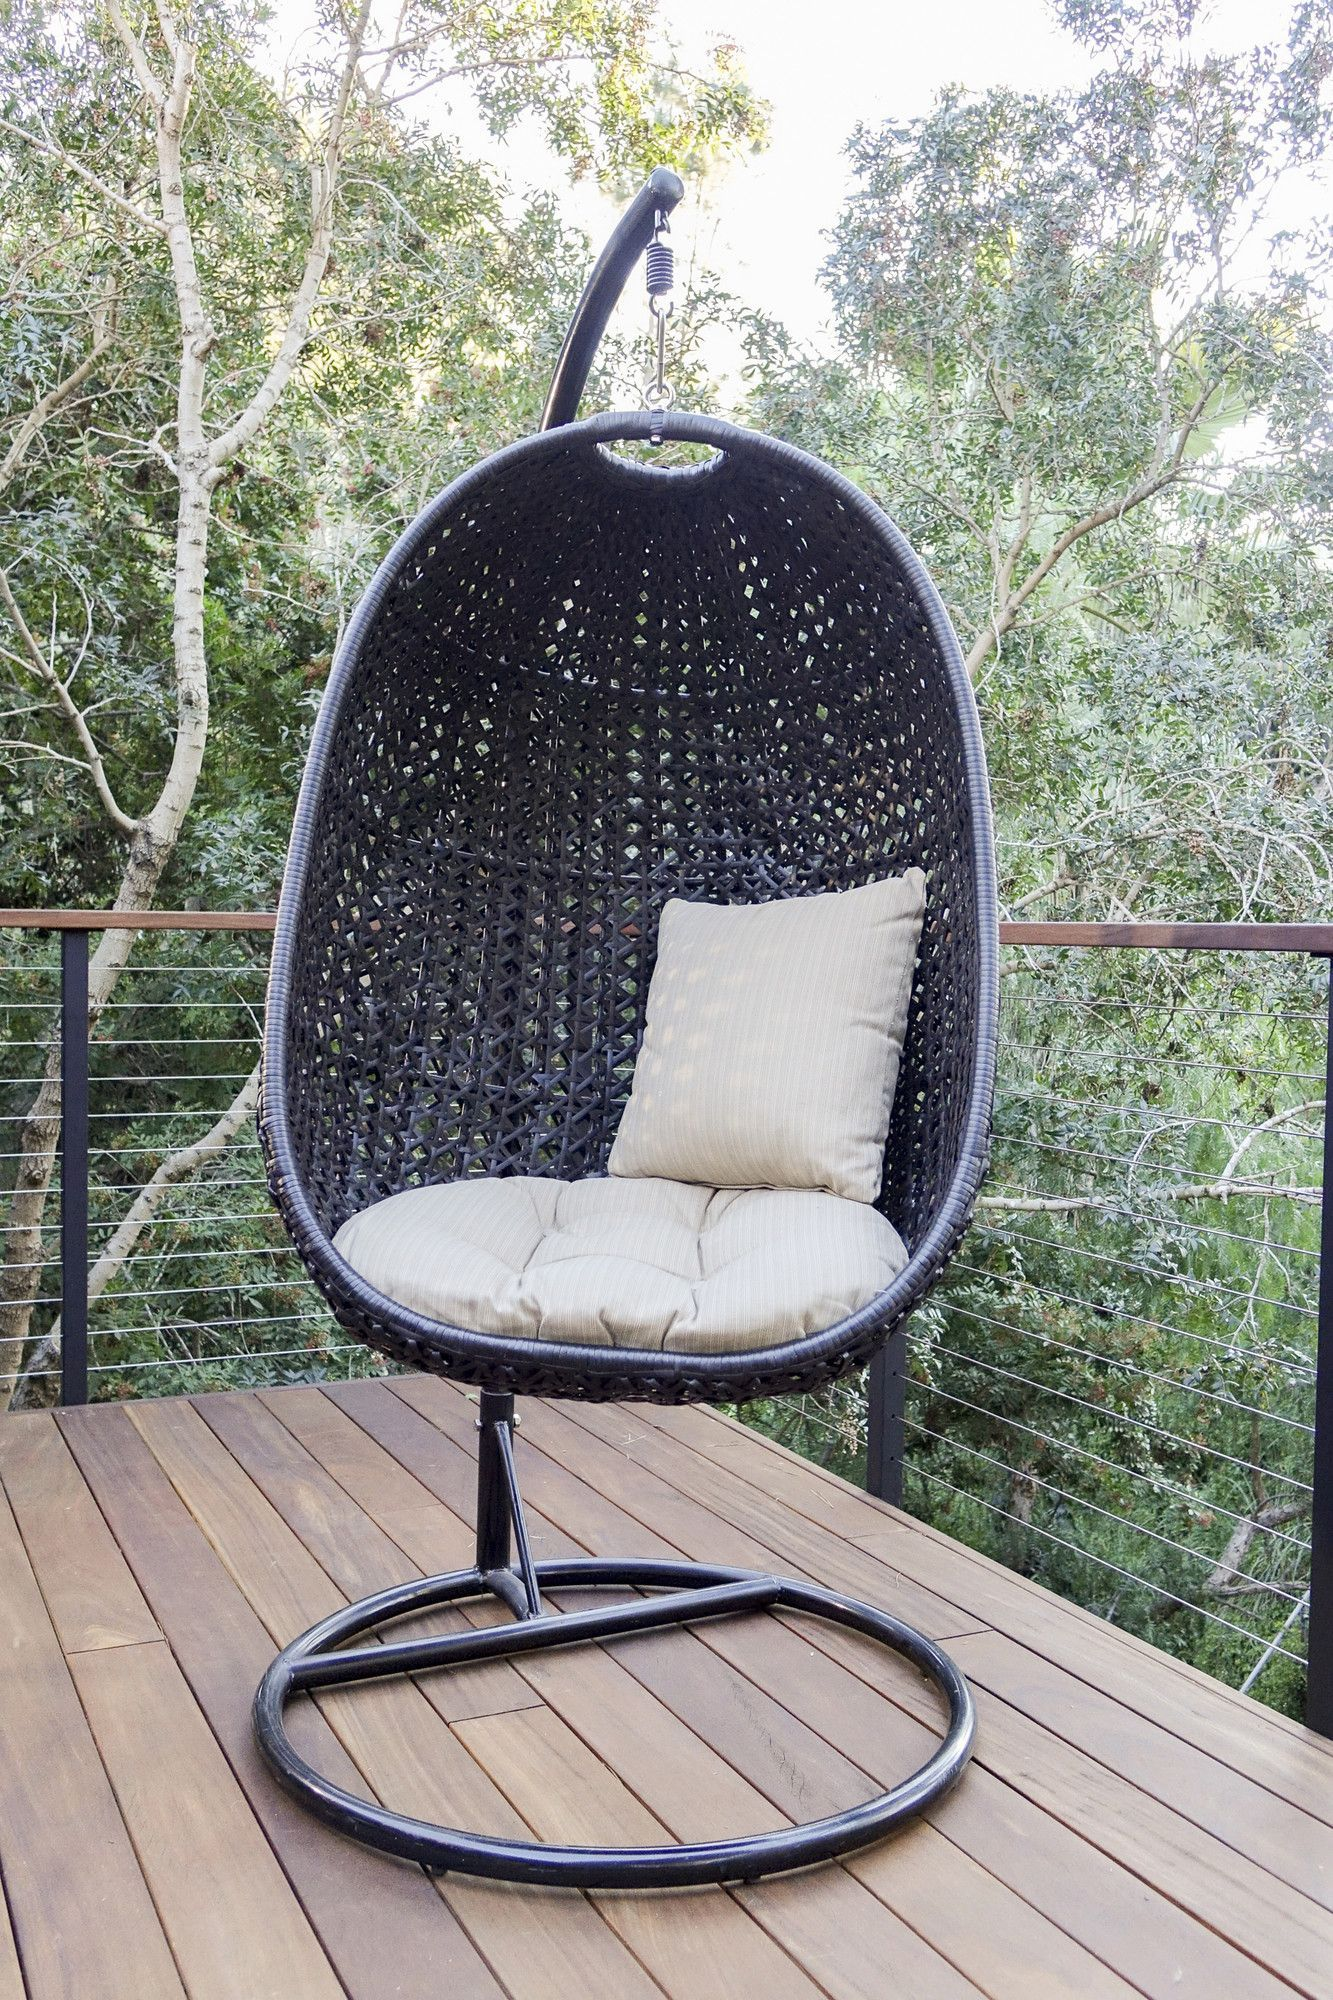 nimbus hanging chair with stand | products | pinterest, Gartengerate ideen